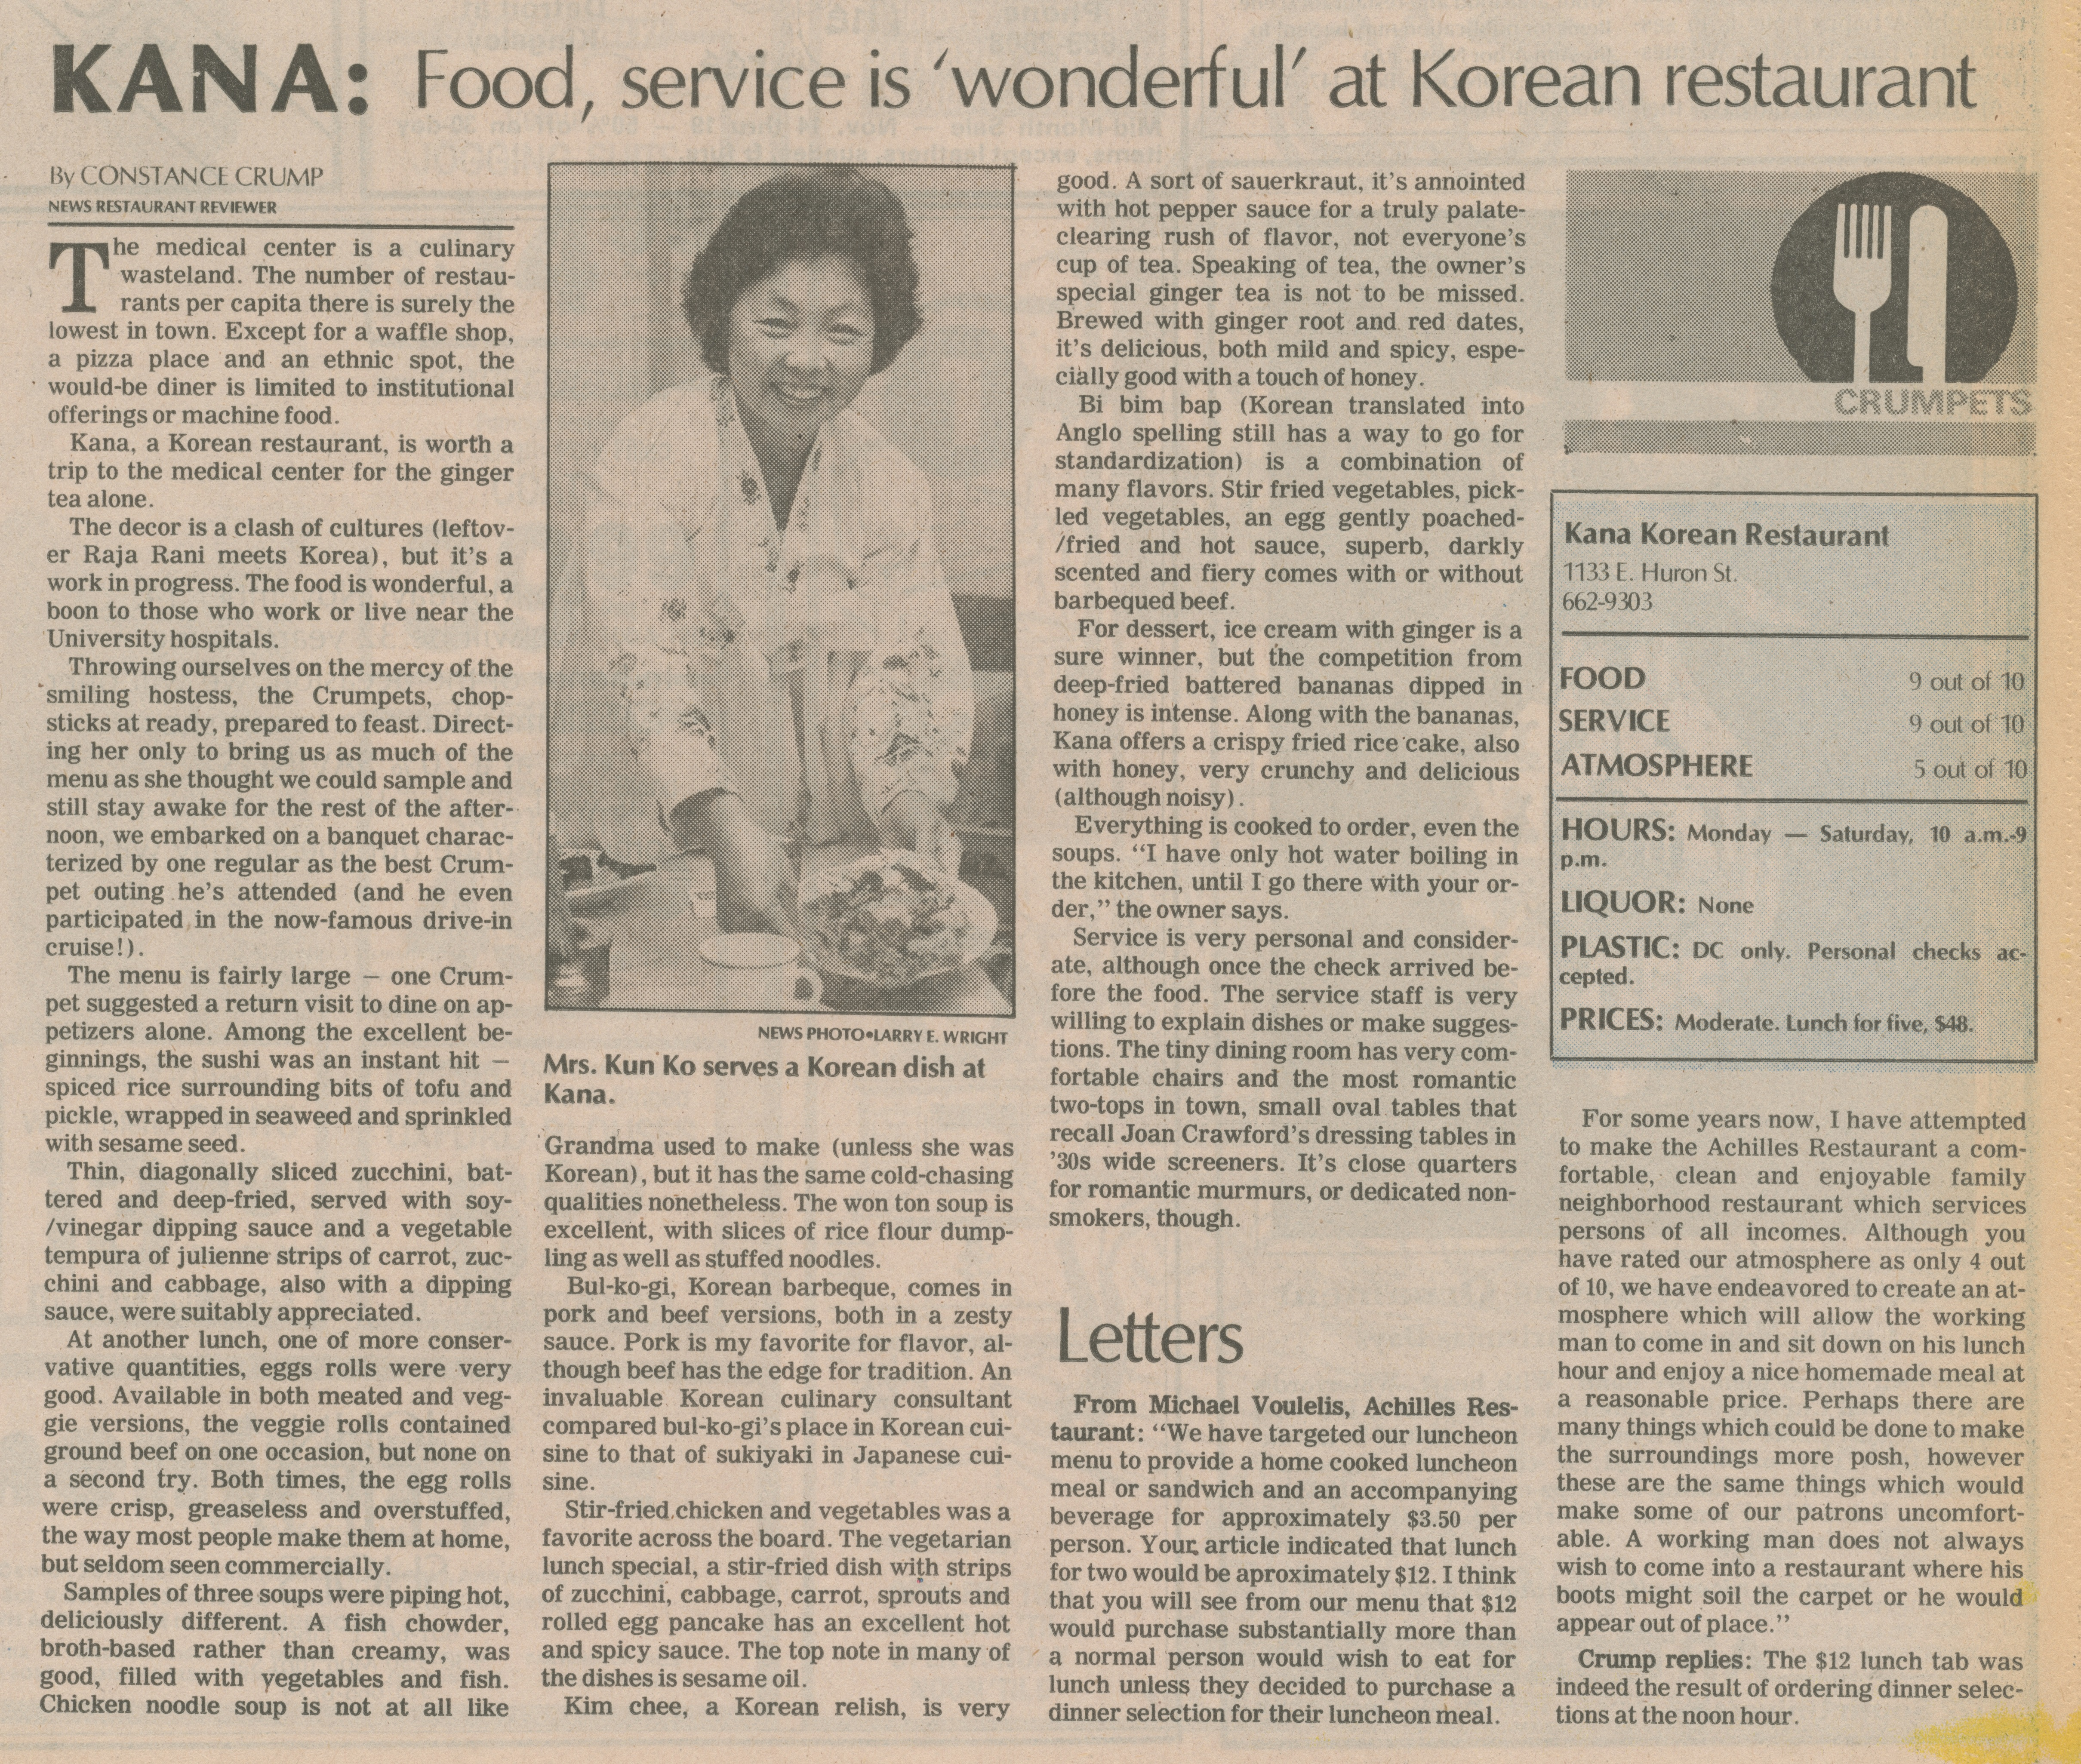 KANA: Food, service is 'wonderful' at Korean restaurant image